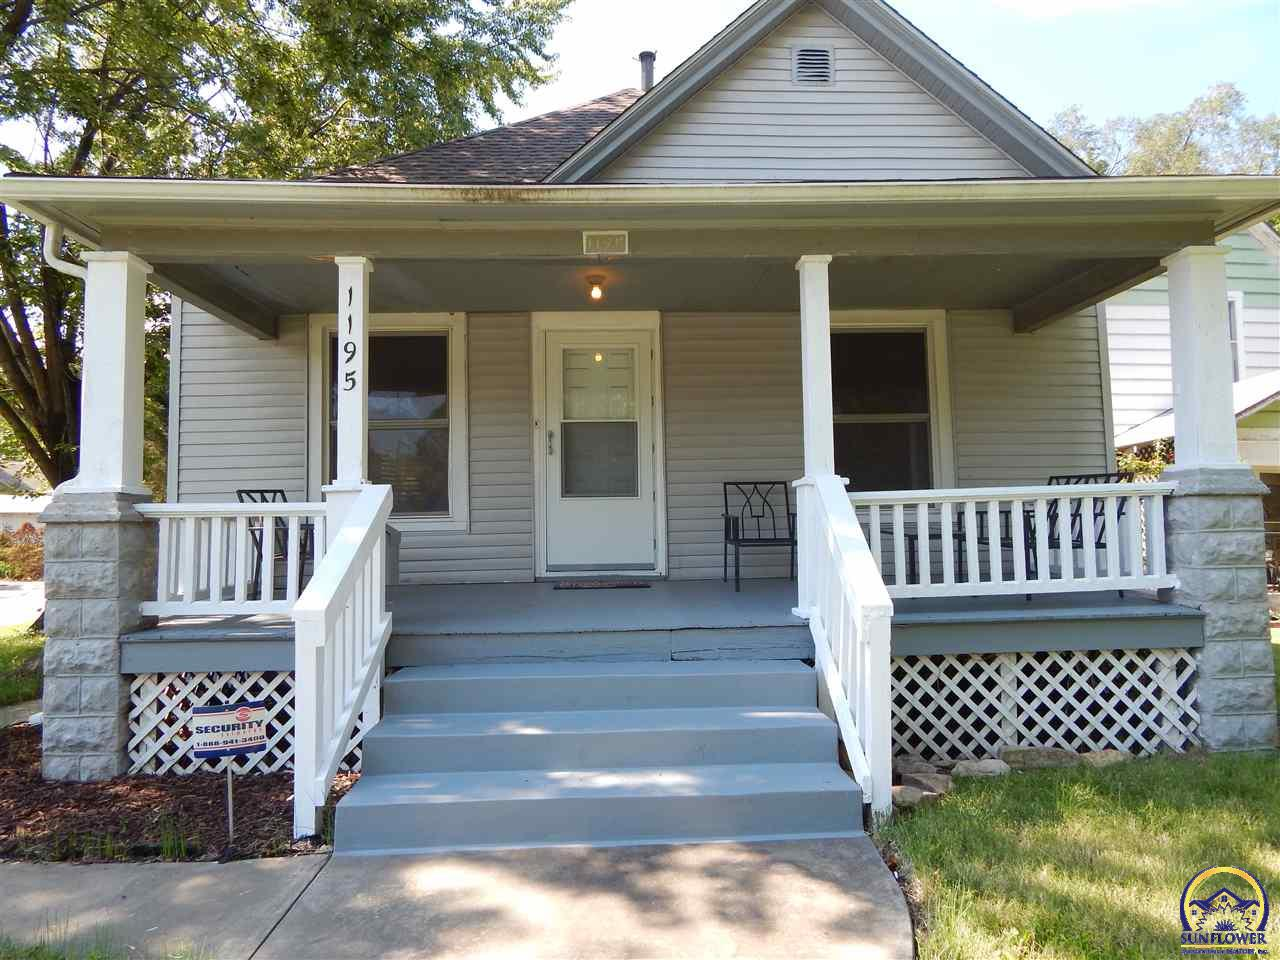 Topeka Real Estate 1195 Sw Plass Ave Listing 191569